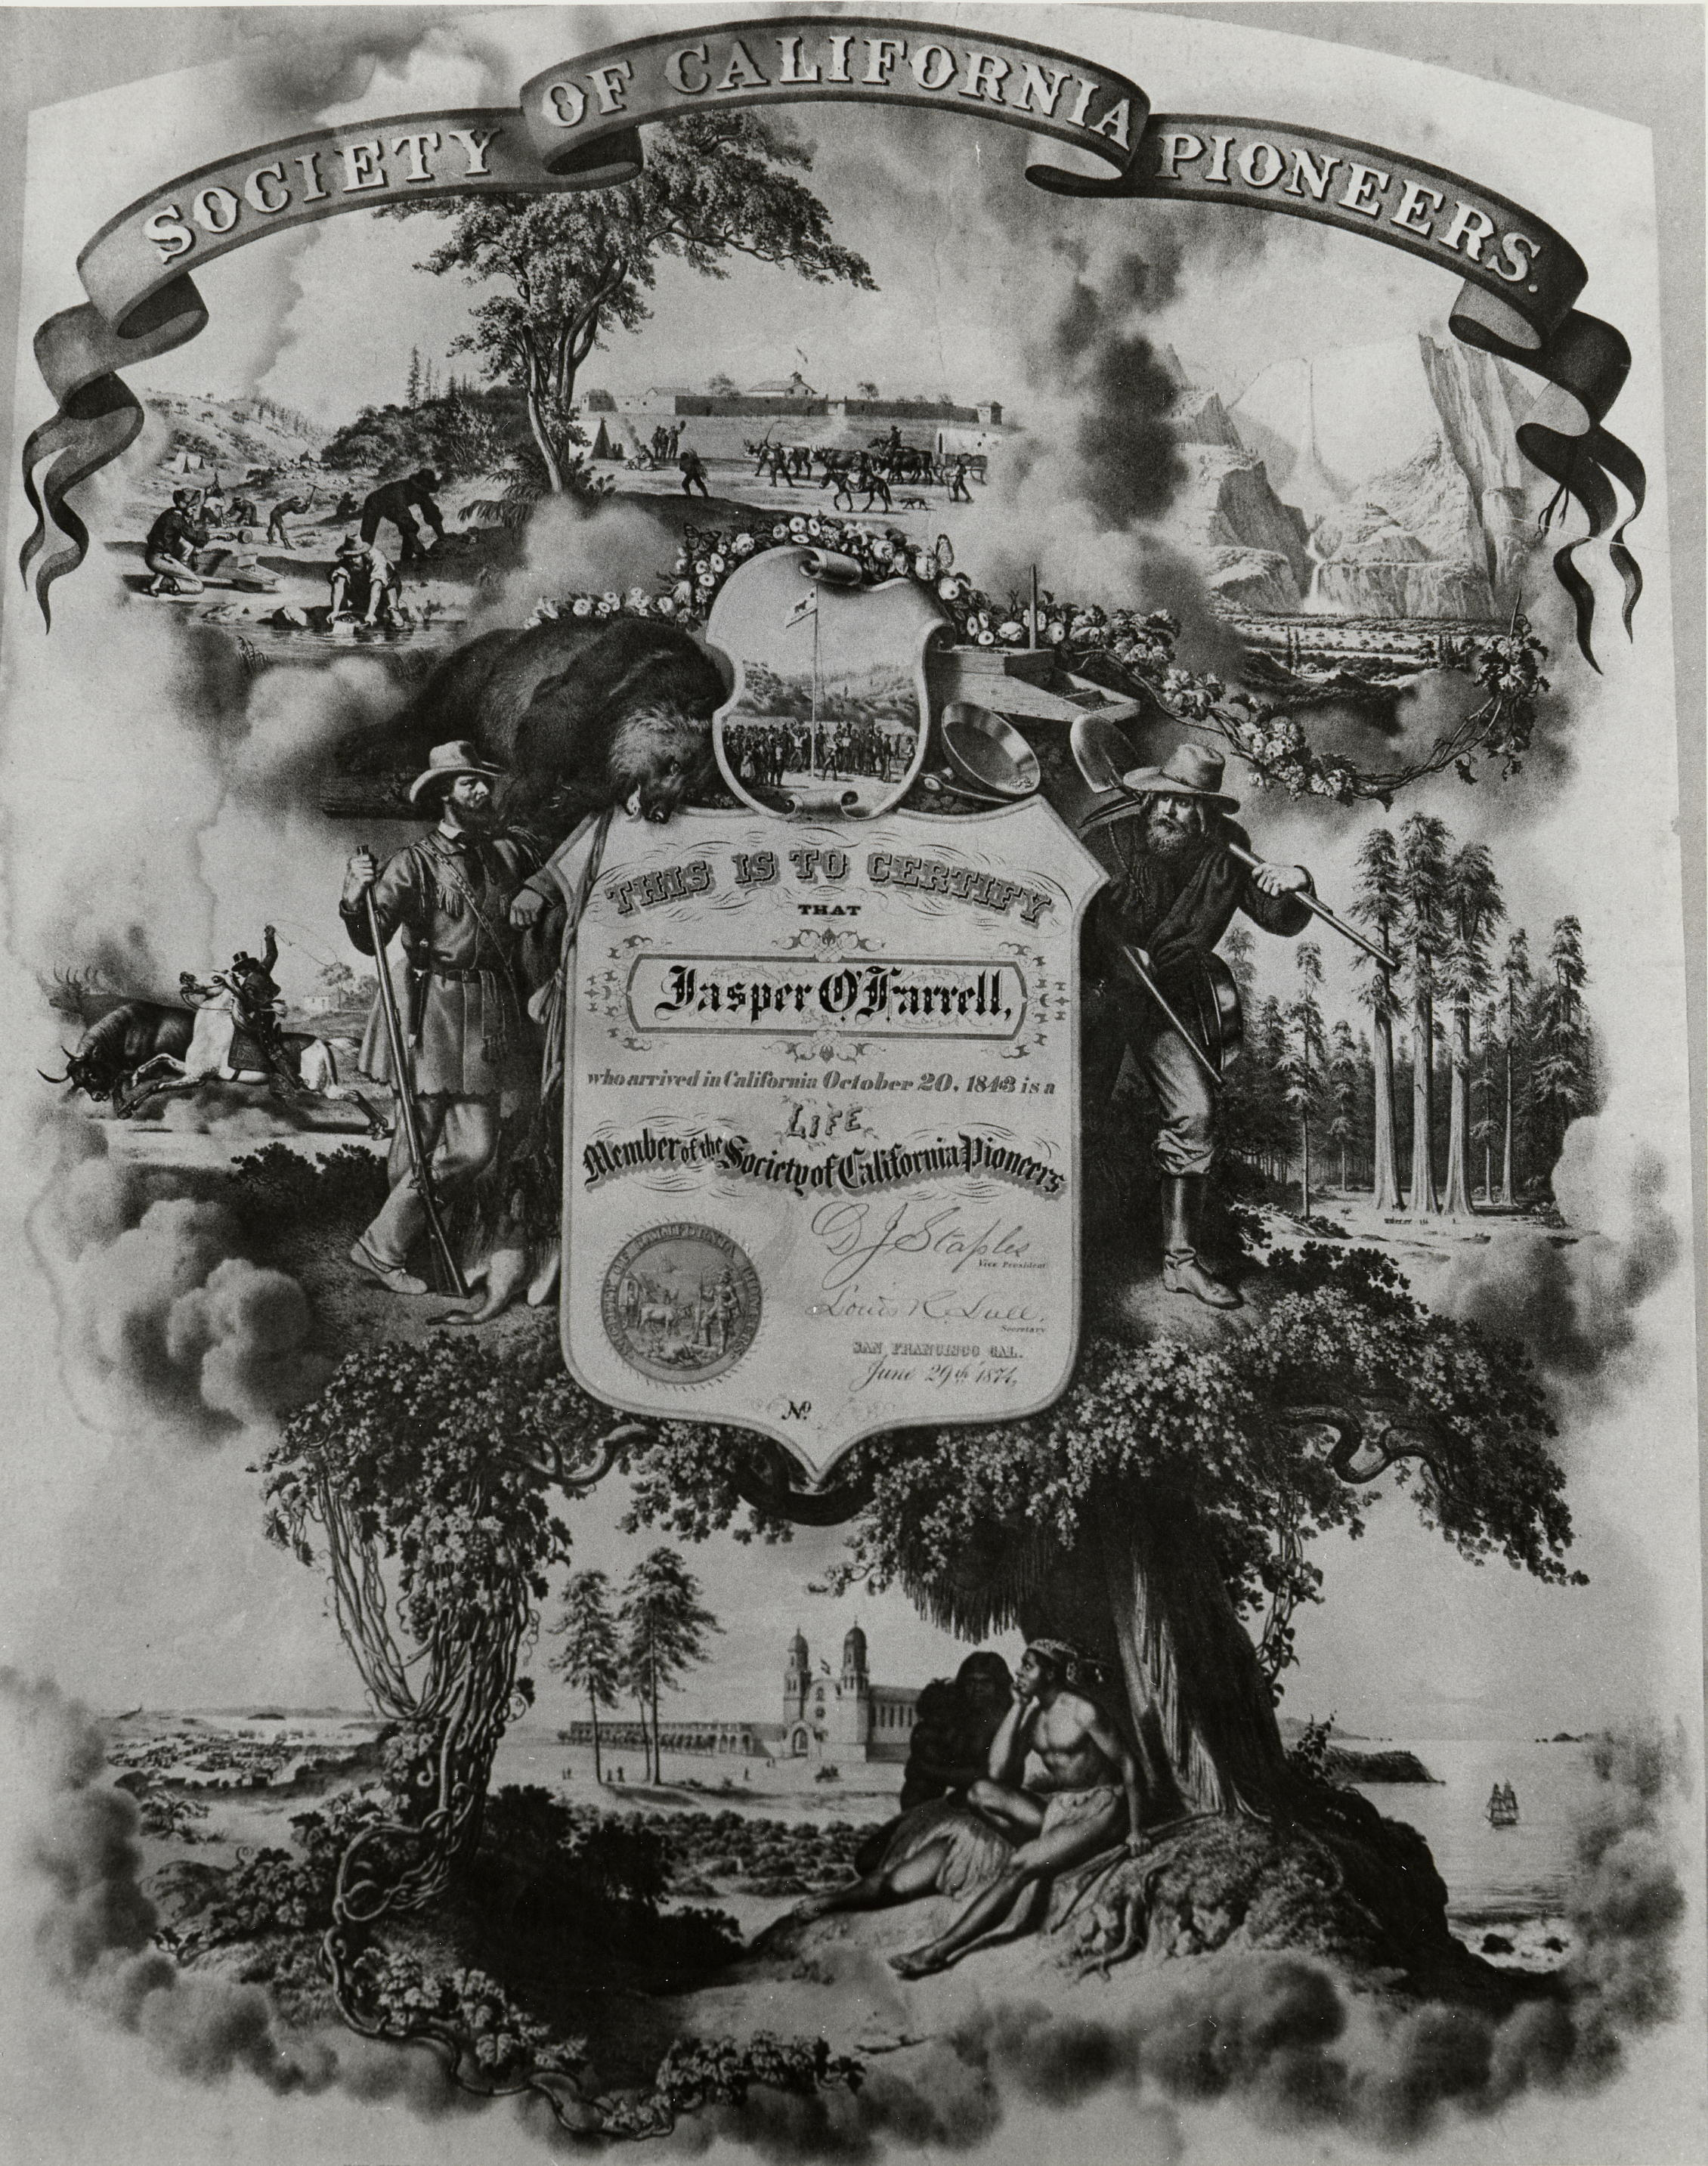 Society member certificate for Jasper O'Farrell, issued June 29, 1874 (image from the Society of California Pioneers)